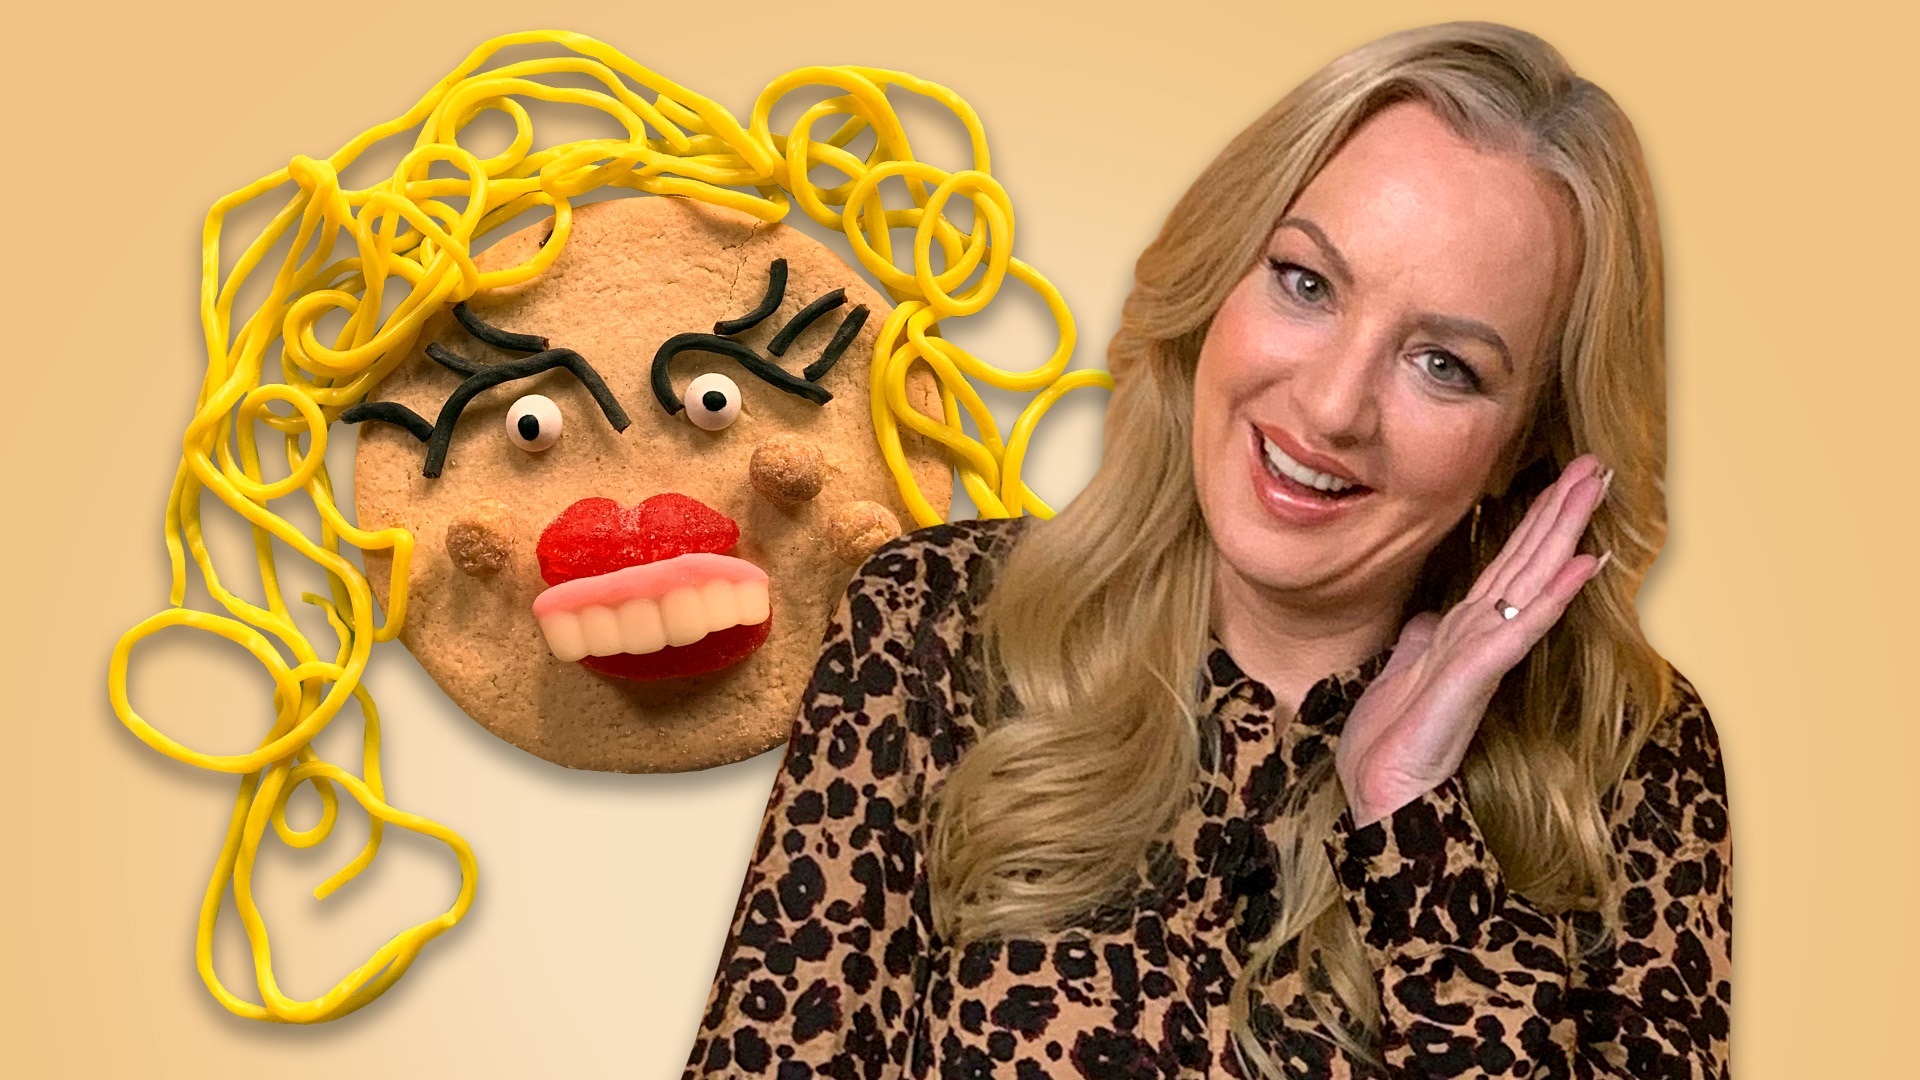 Wendi McClendon-Covey and her cookie self-portrait